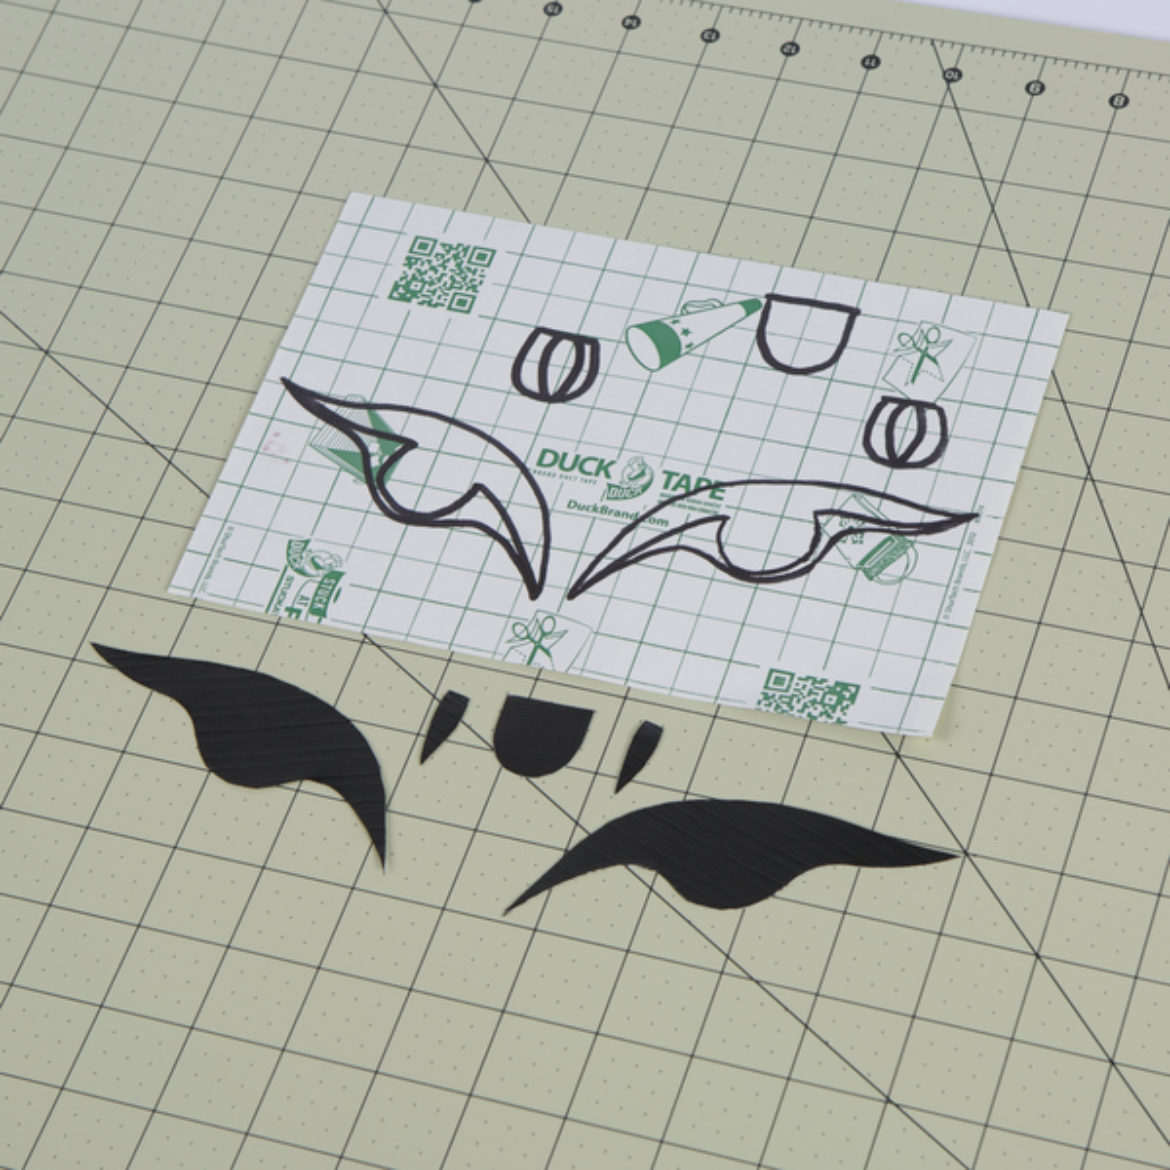 Eyes and tongue outlines cut out of black Duck Tape